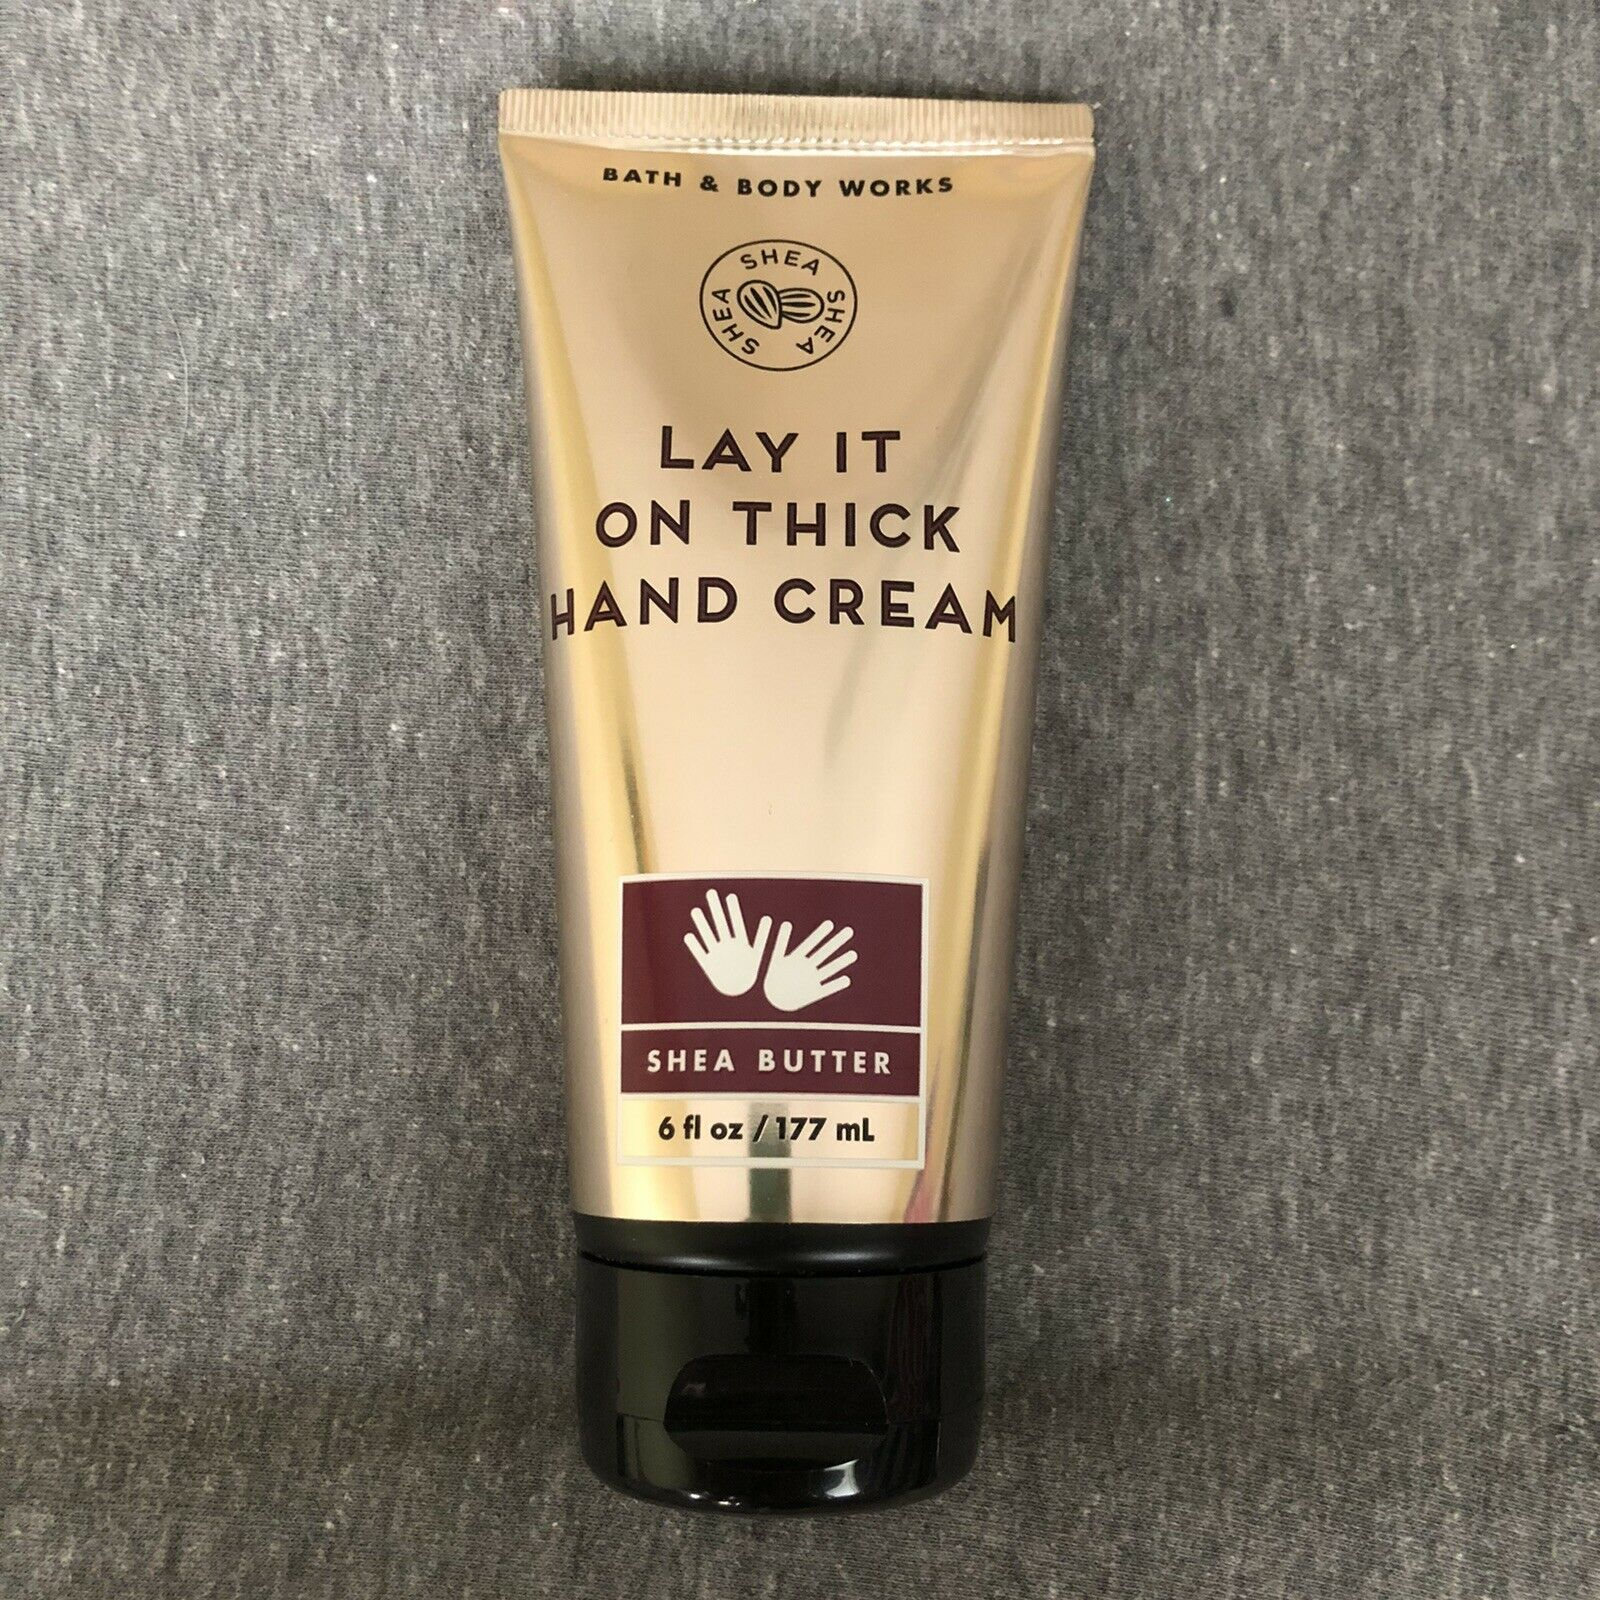 Bath & Body Works Shea Butter Lay it on Thick Hand Cream